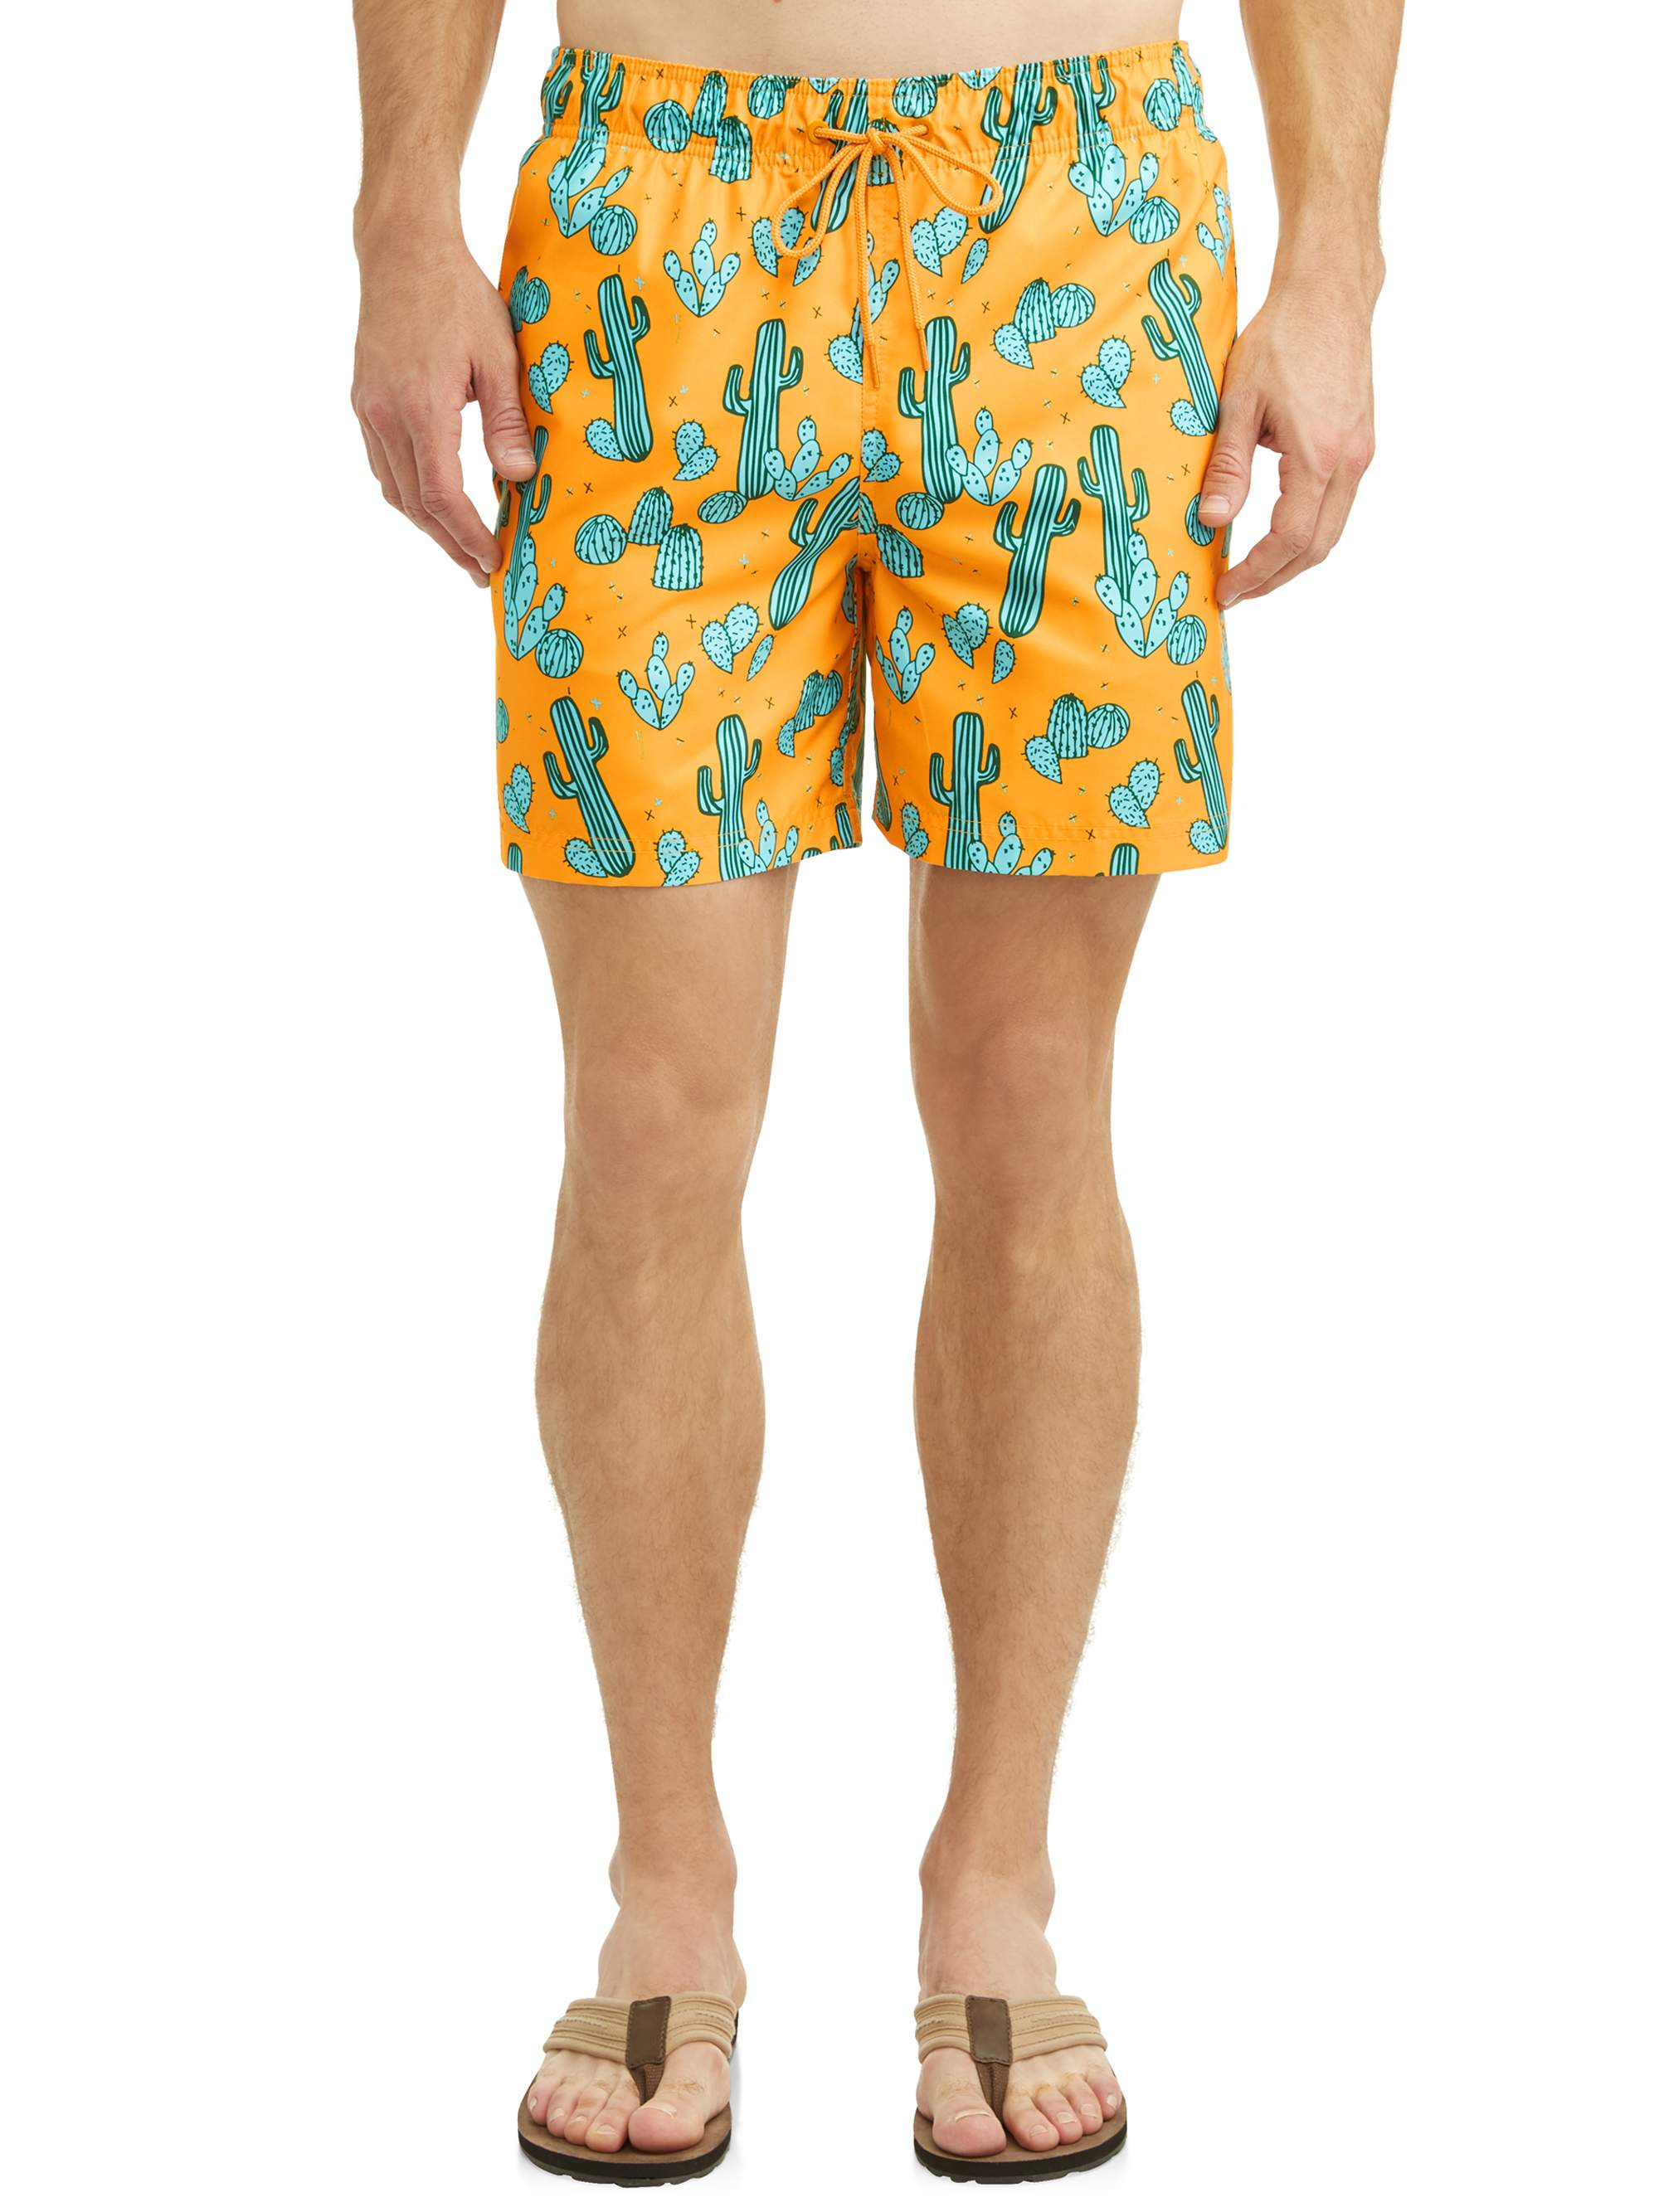 George Men's Novelty Eboard Swim Short, Up to Size 5XL